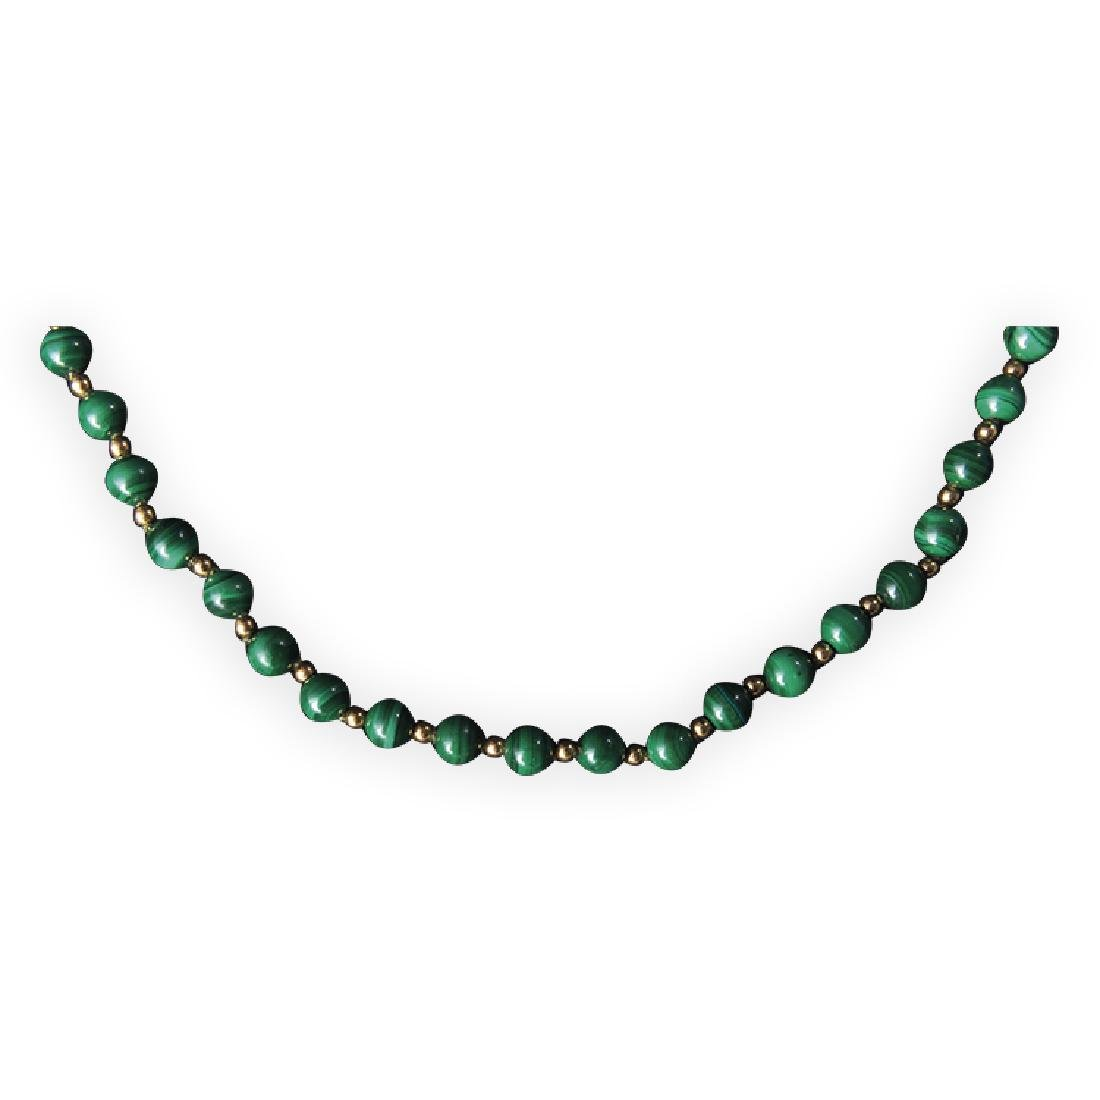 Necklace with malachite balls